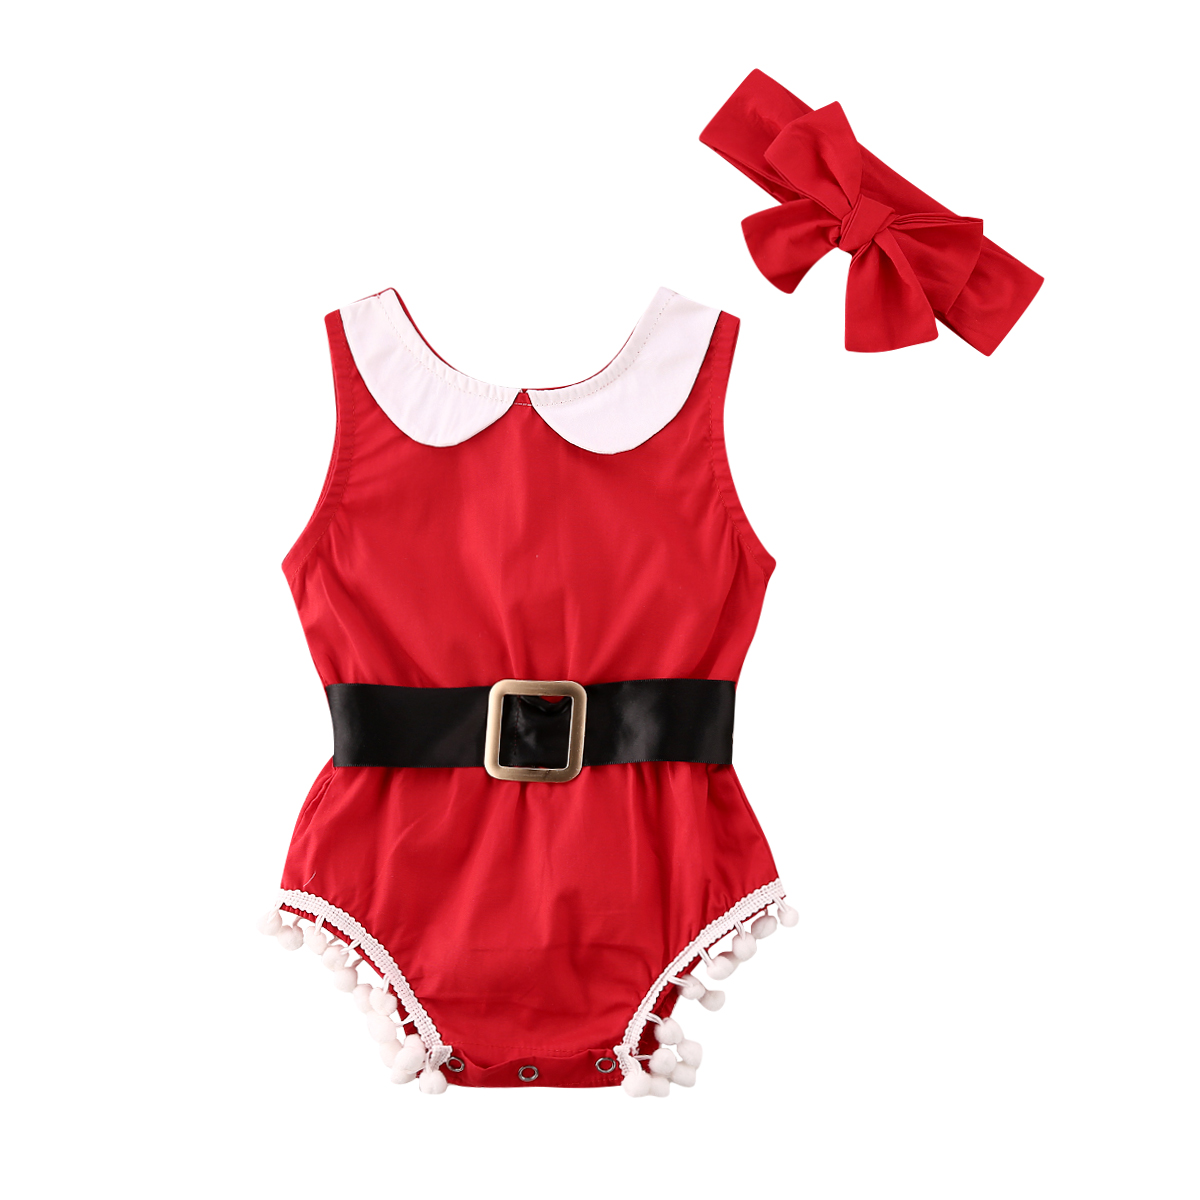 My First Christmas Princess Infant Baby Girl Clothing Sleeveless Tassel Bodysuit  Jumpsuit  Outfit Children's Clothes For Girl